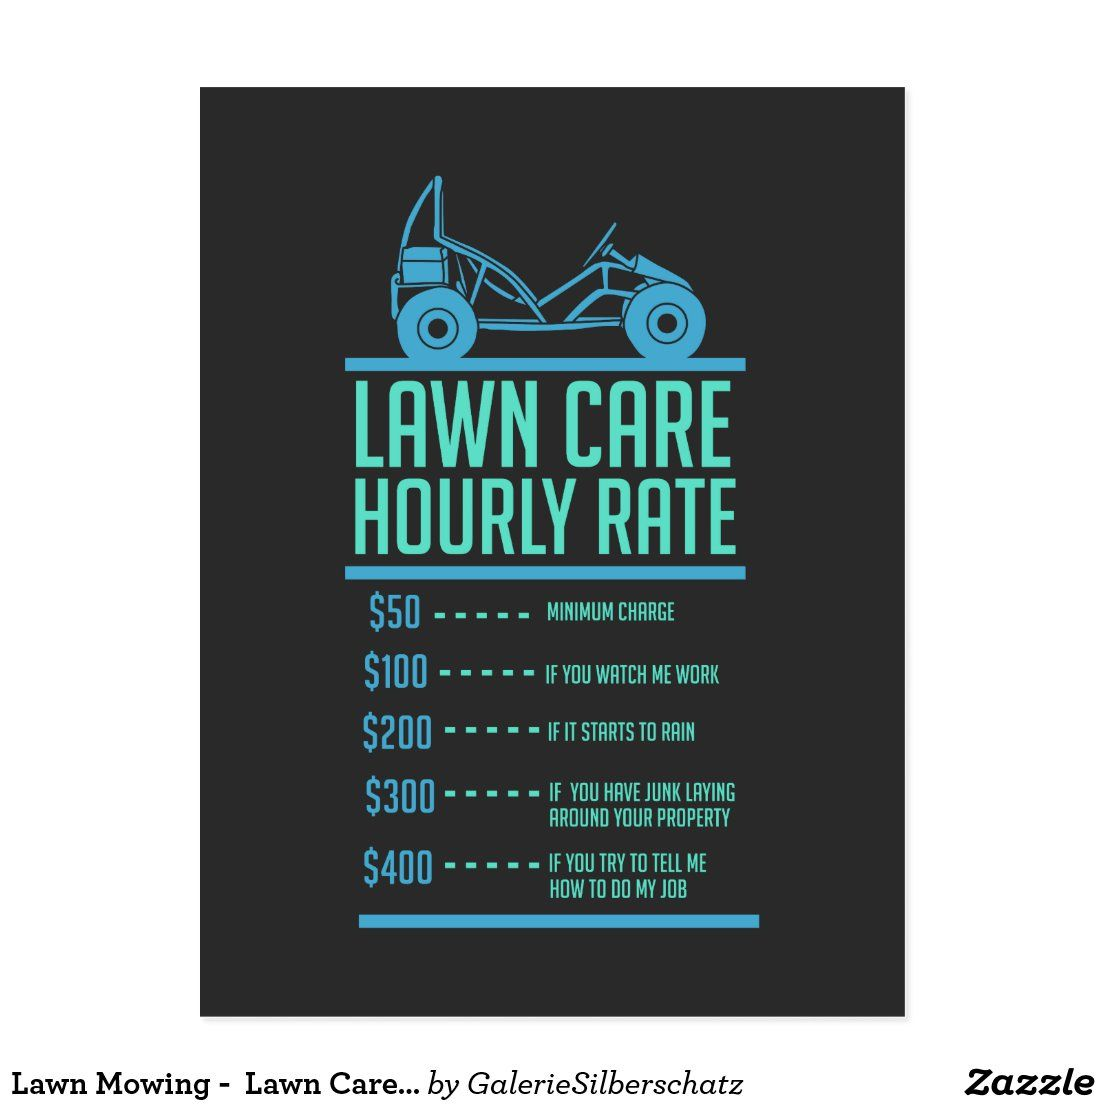 Lawn Mowing Lawn Care Hourly Rate Postcard Zazzle Com In 2020 Lawn Care Mowing Lawn Care Business Cards